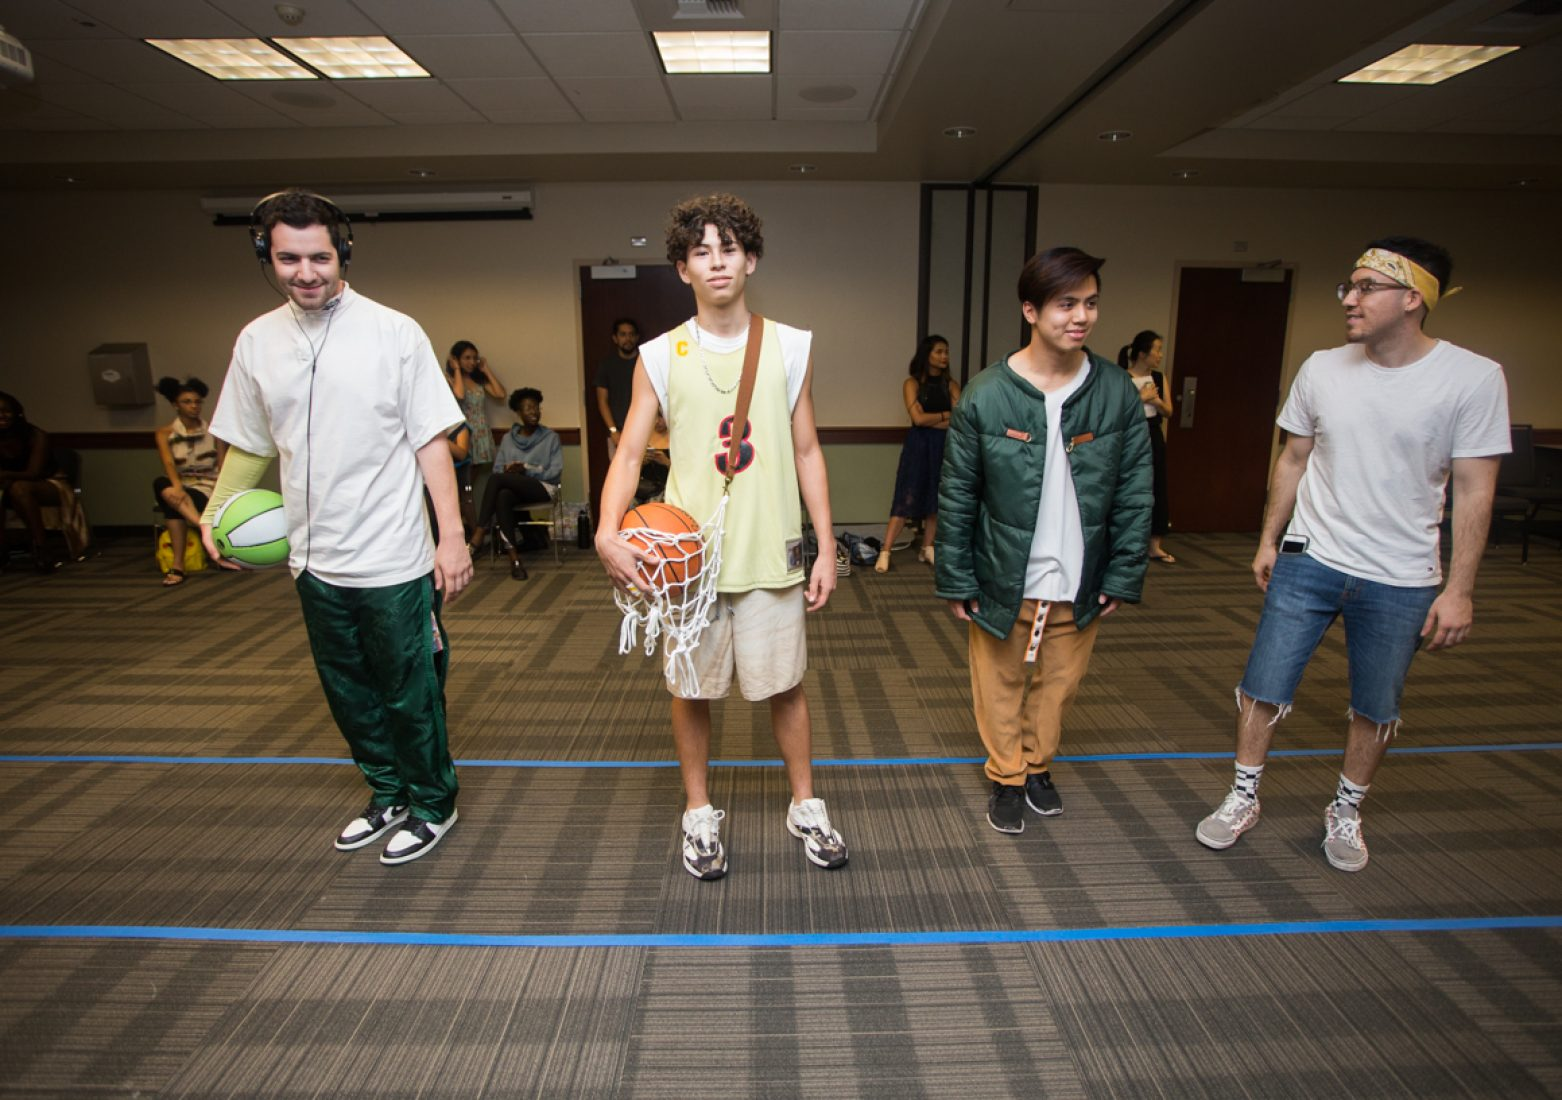 Menswear designer Jose Avila, far right, stands next to his models during rehearsal in the University Union Foothill Suite on Wednesday. (Photo by Nicole Fowler)